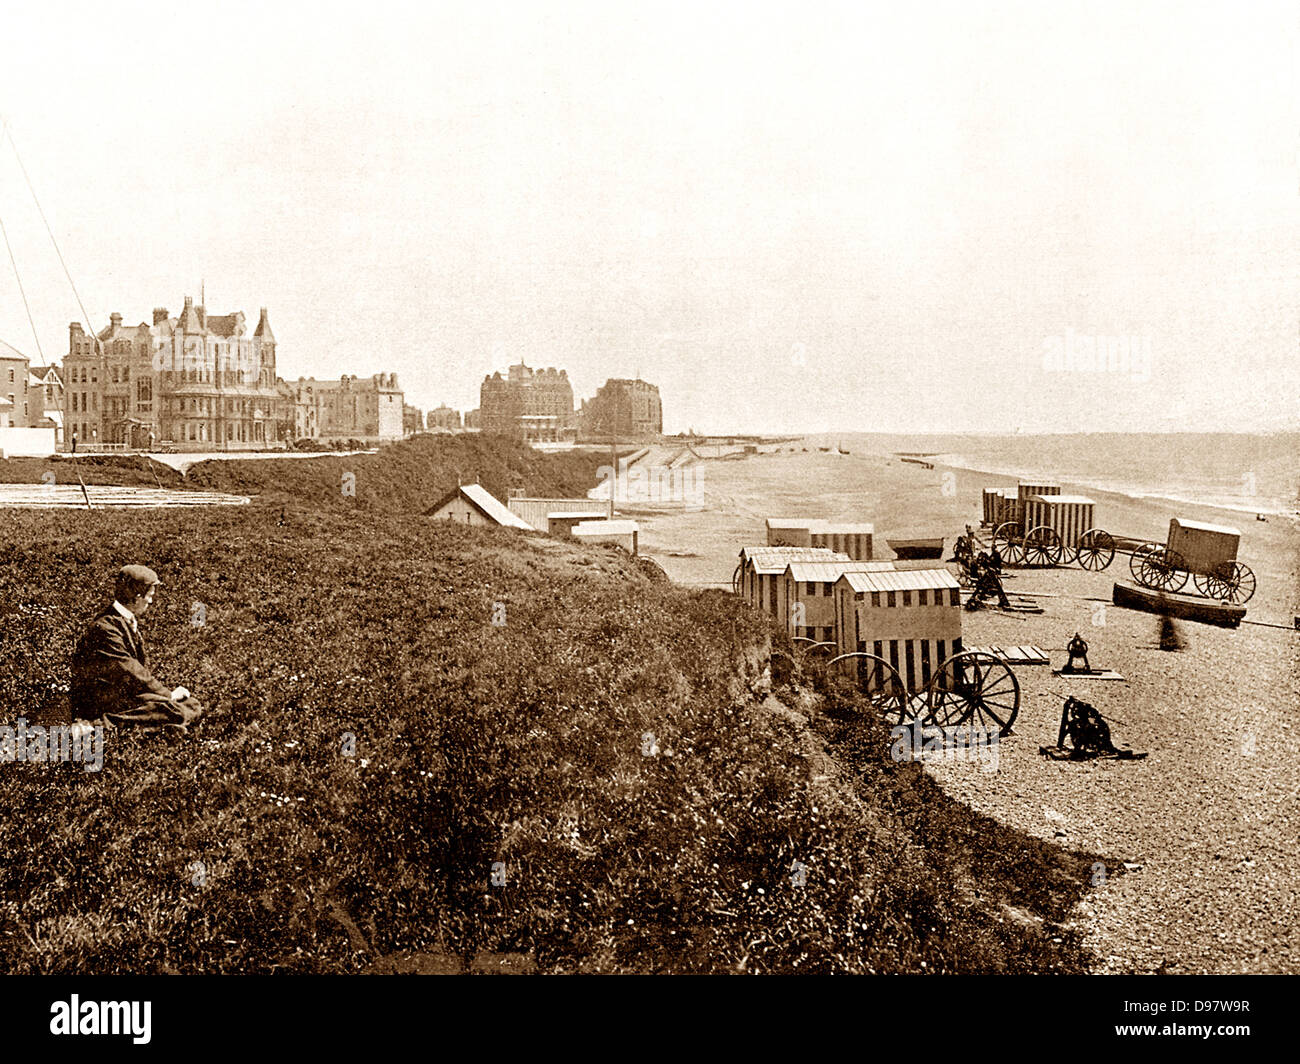 Bexhill-on-Sea Beach early 1900s - Stock Image